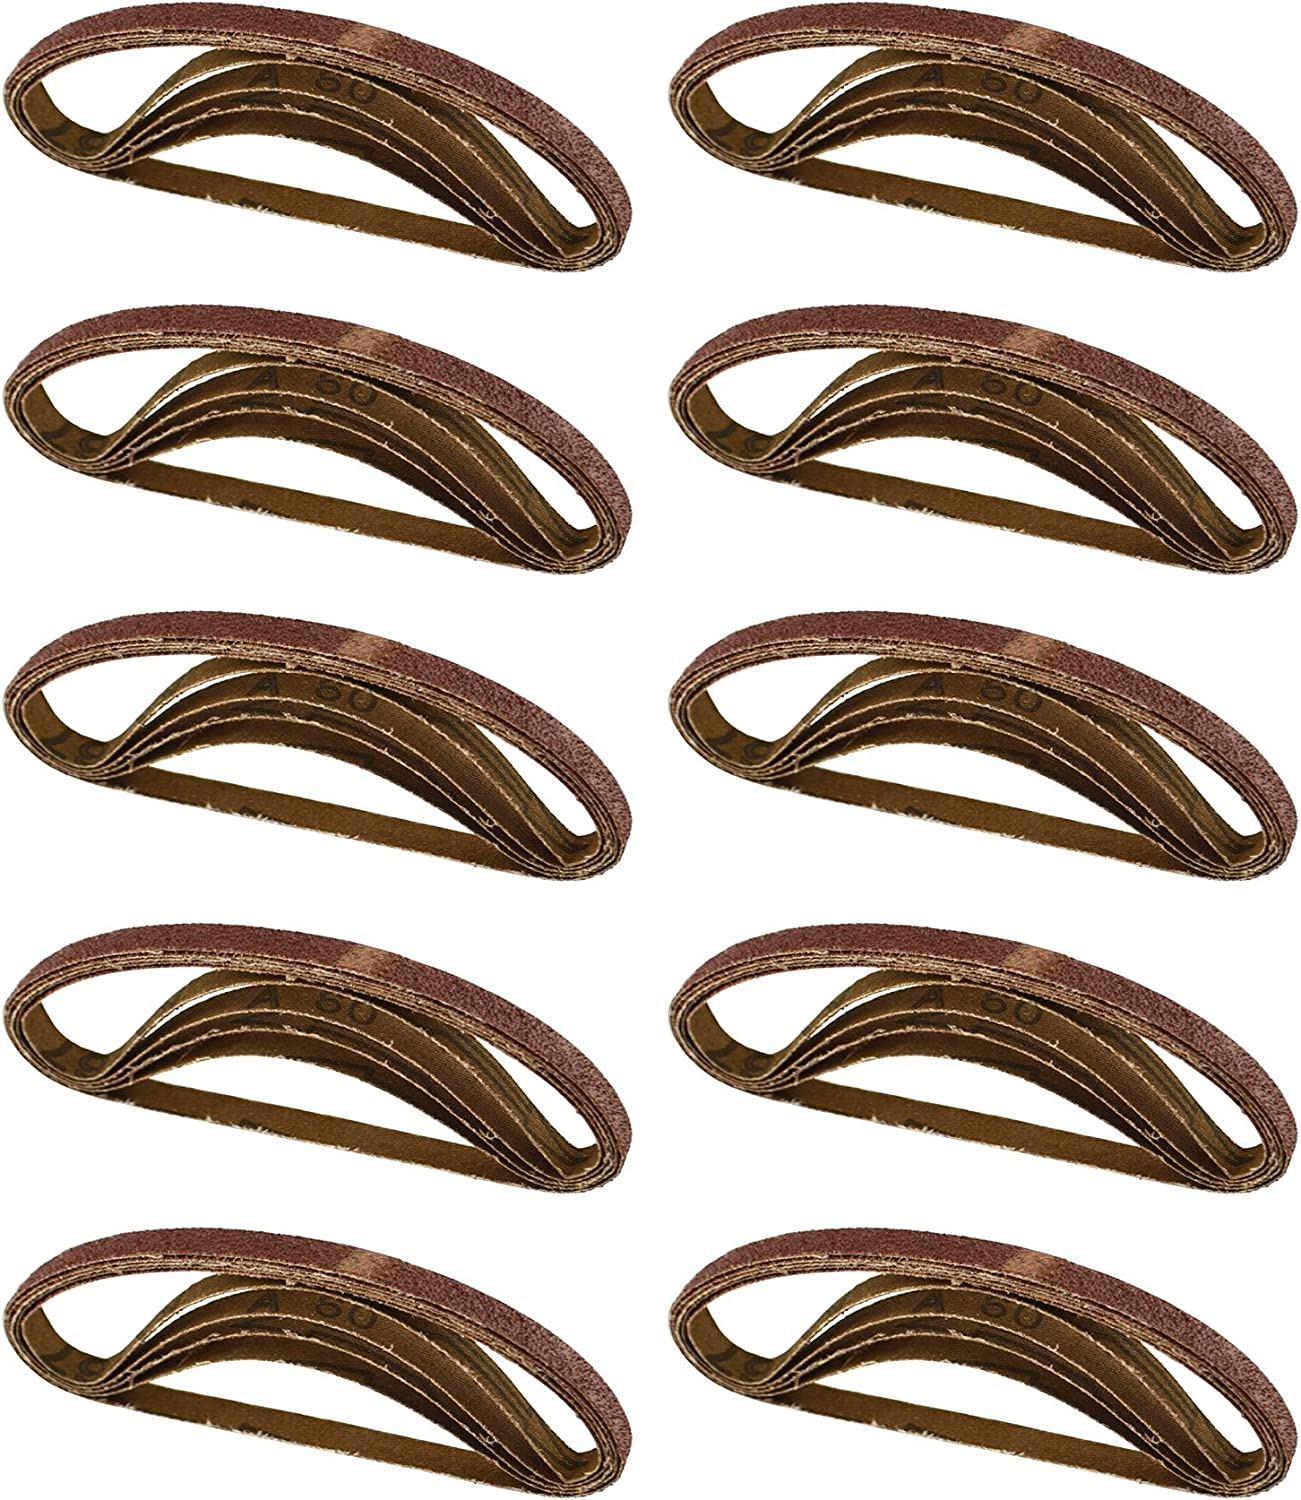 Belt Power Finger File Sander Abrasive Sanding Belts 330mm x 10mm 60 Grit 50pk